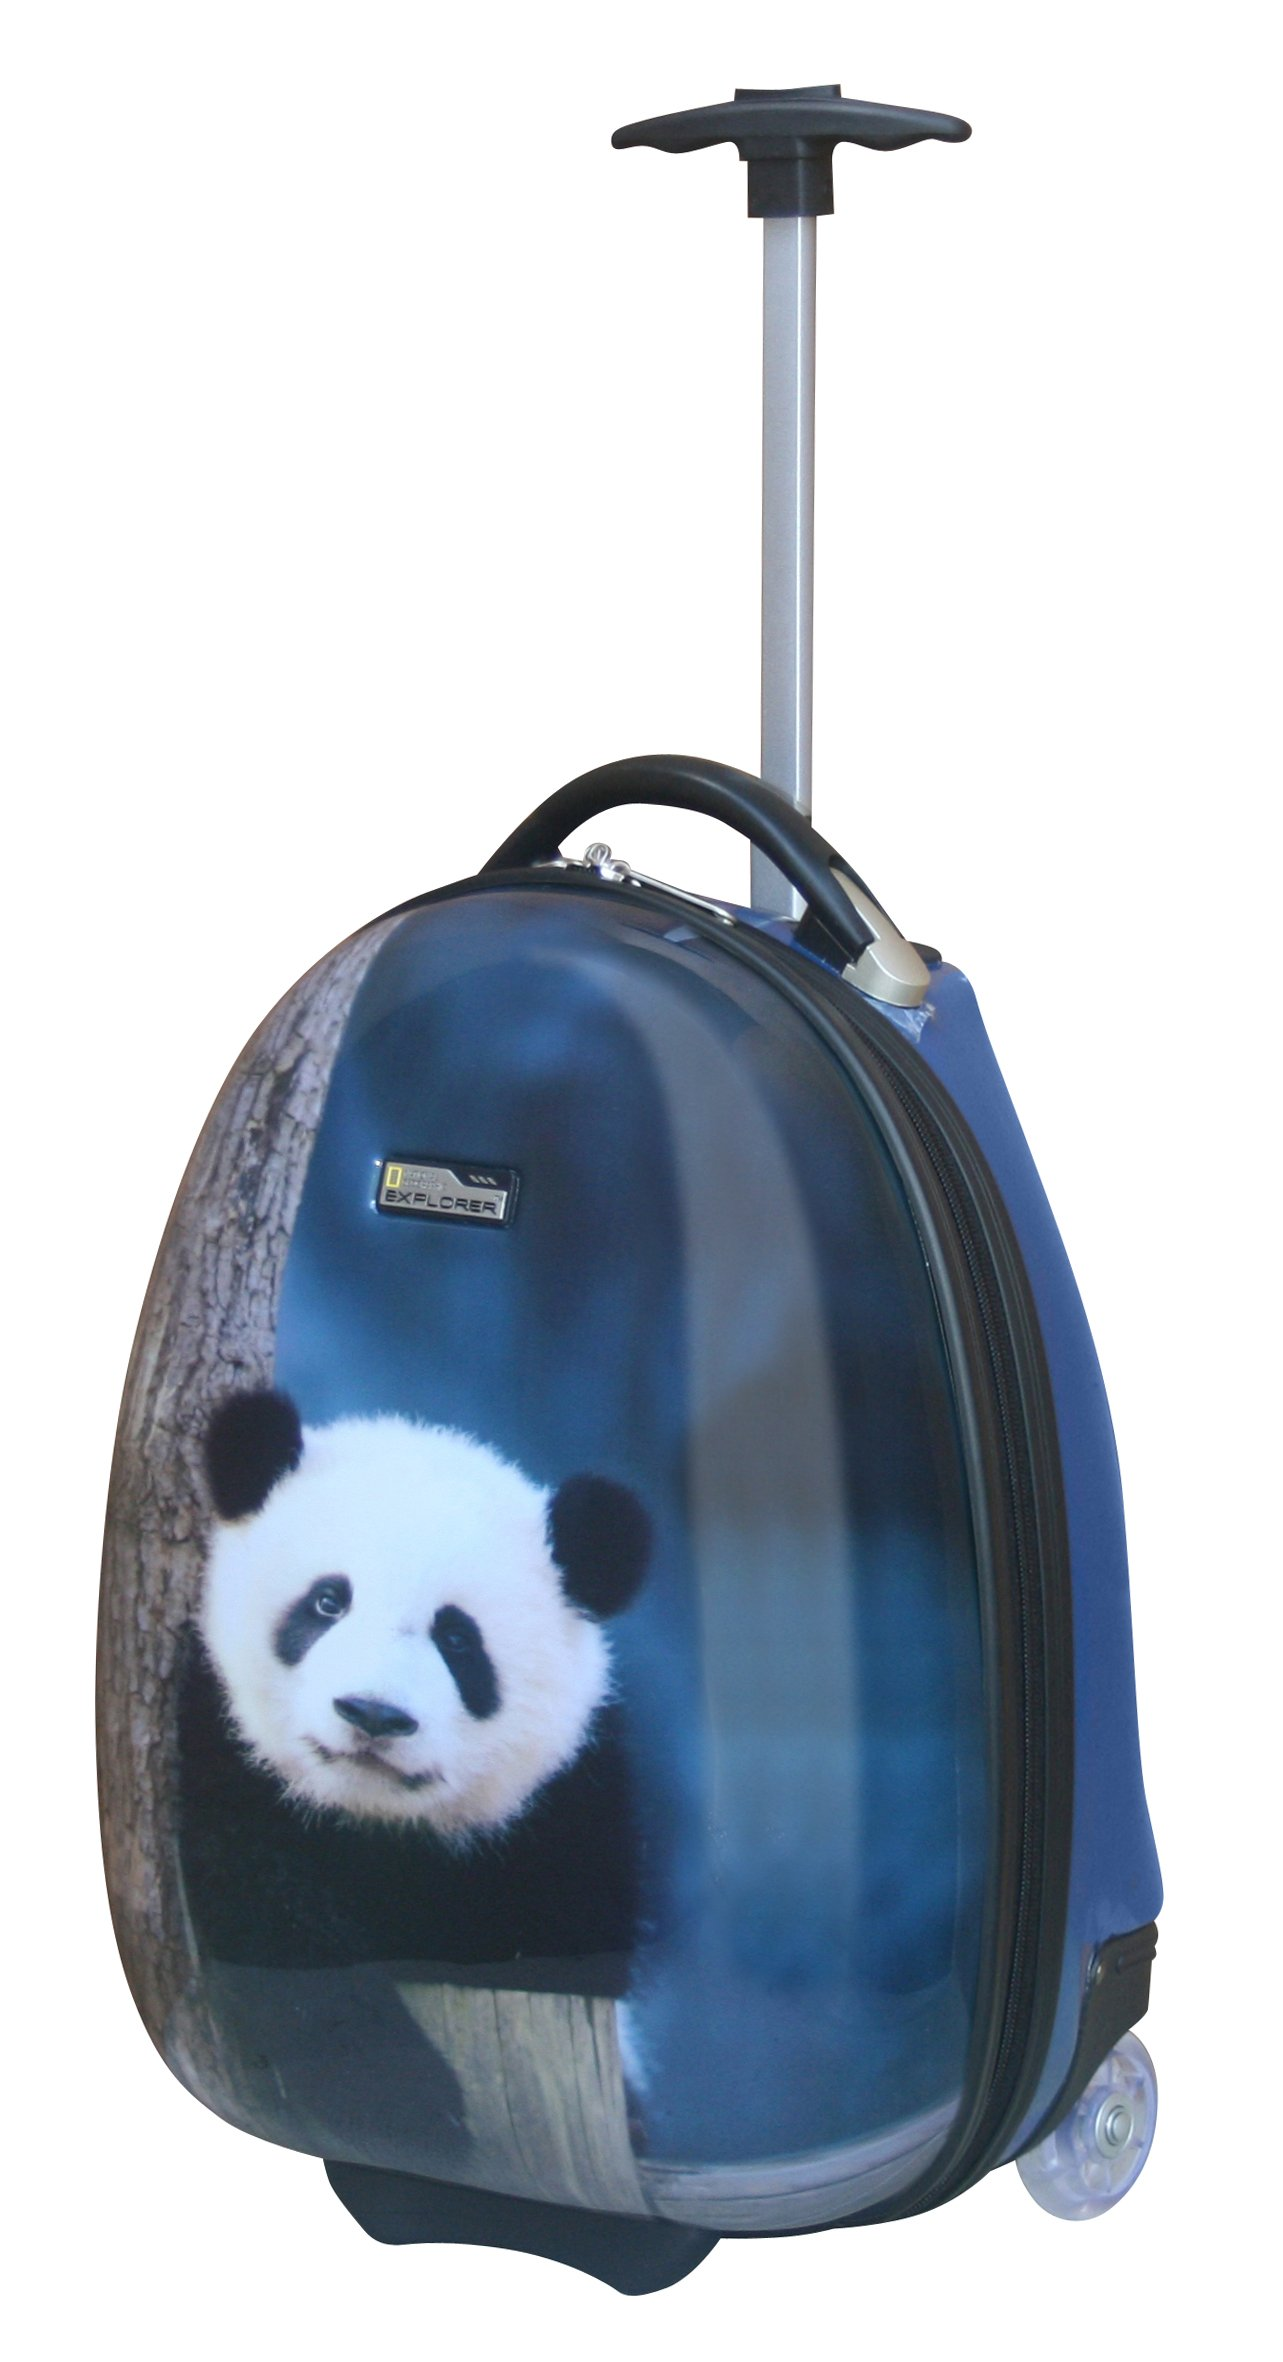 National Geographic Kid's 16 Inch Rolling Luggage, Panda, One Size